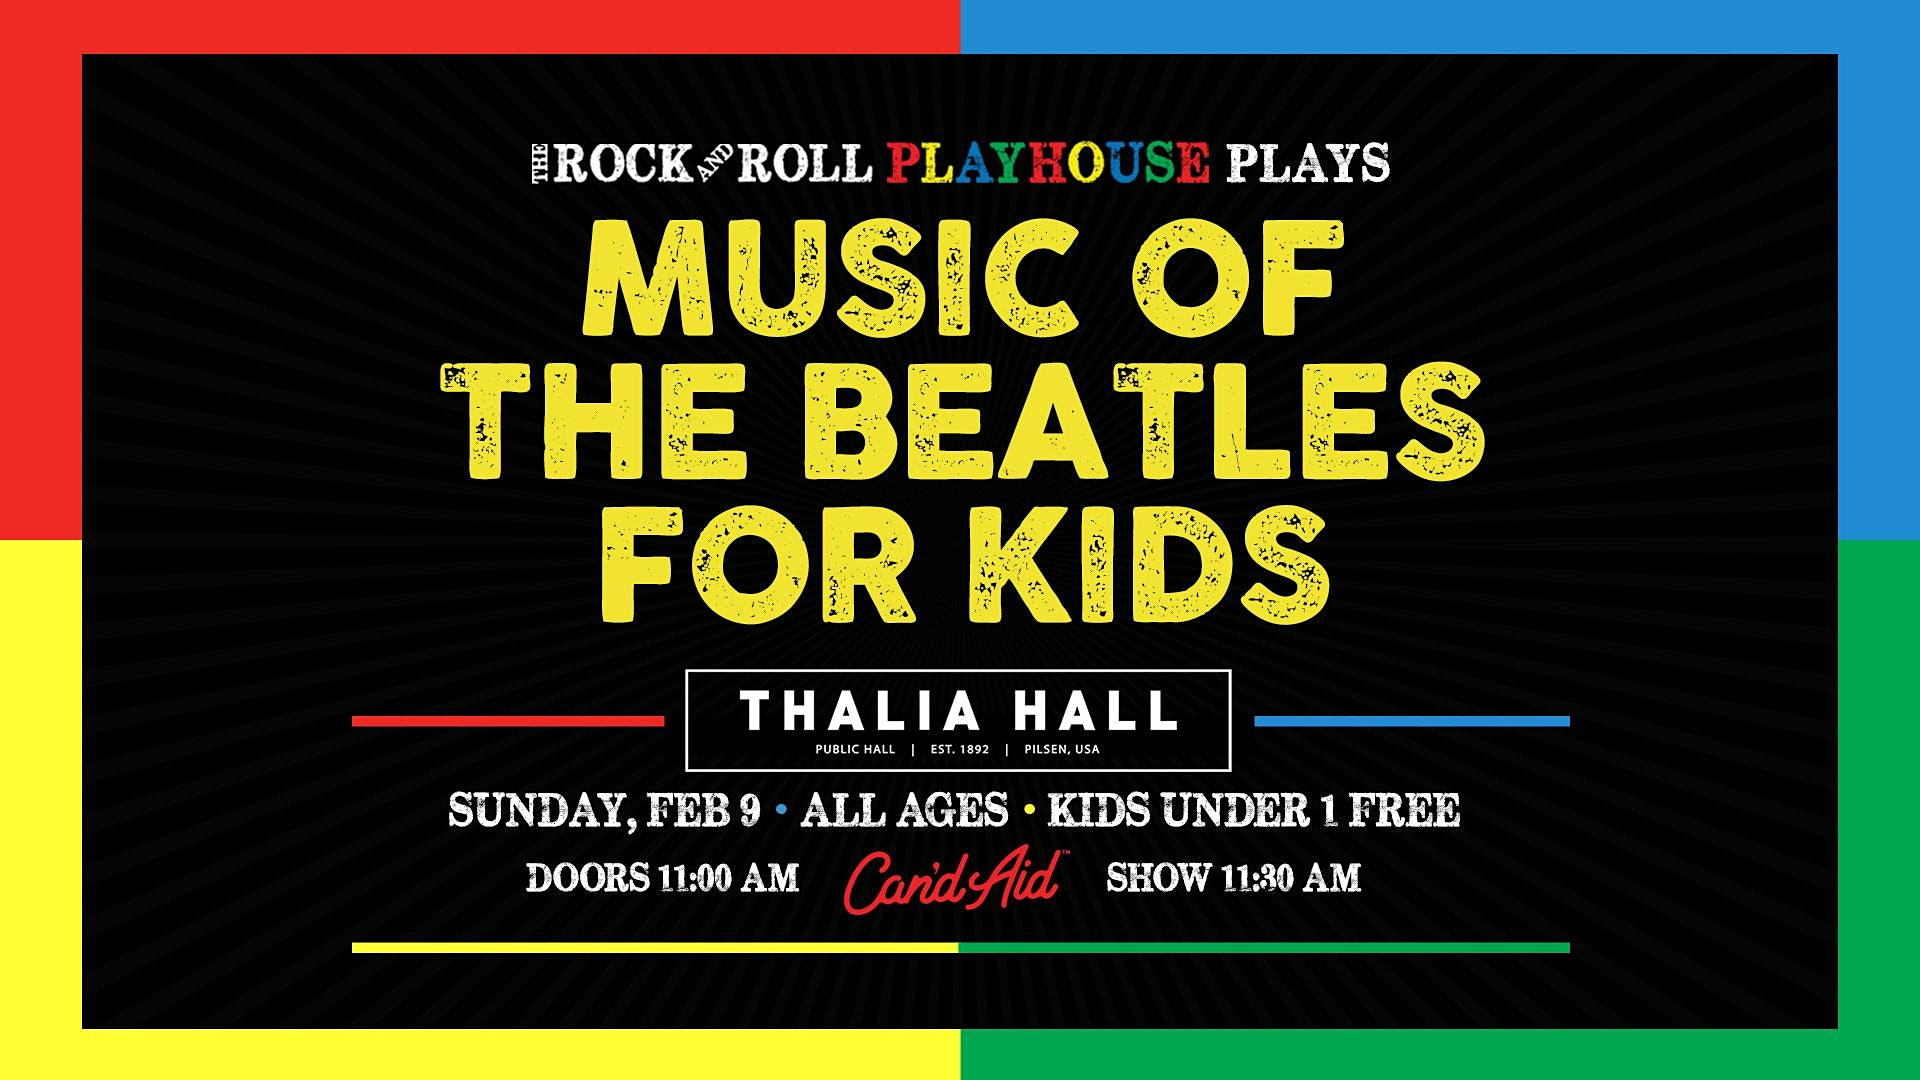 The Rock and Roll Playhouse presents The Music of The Beatles for Kids